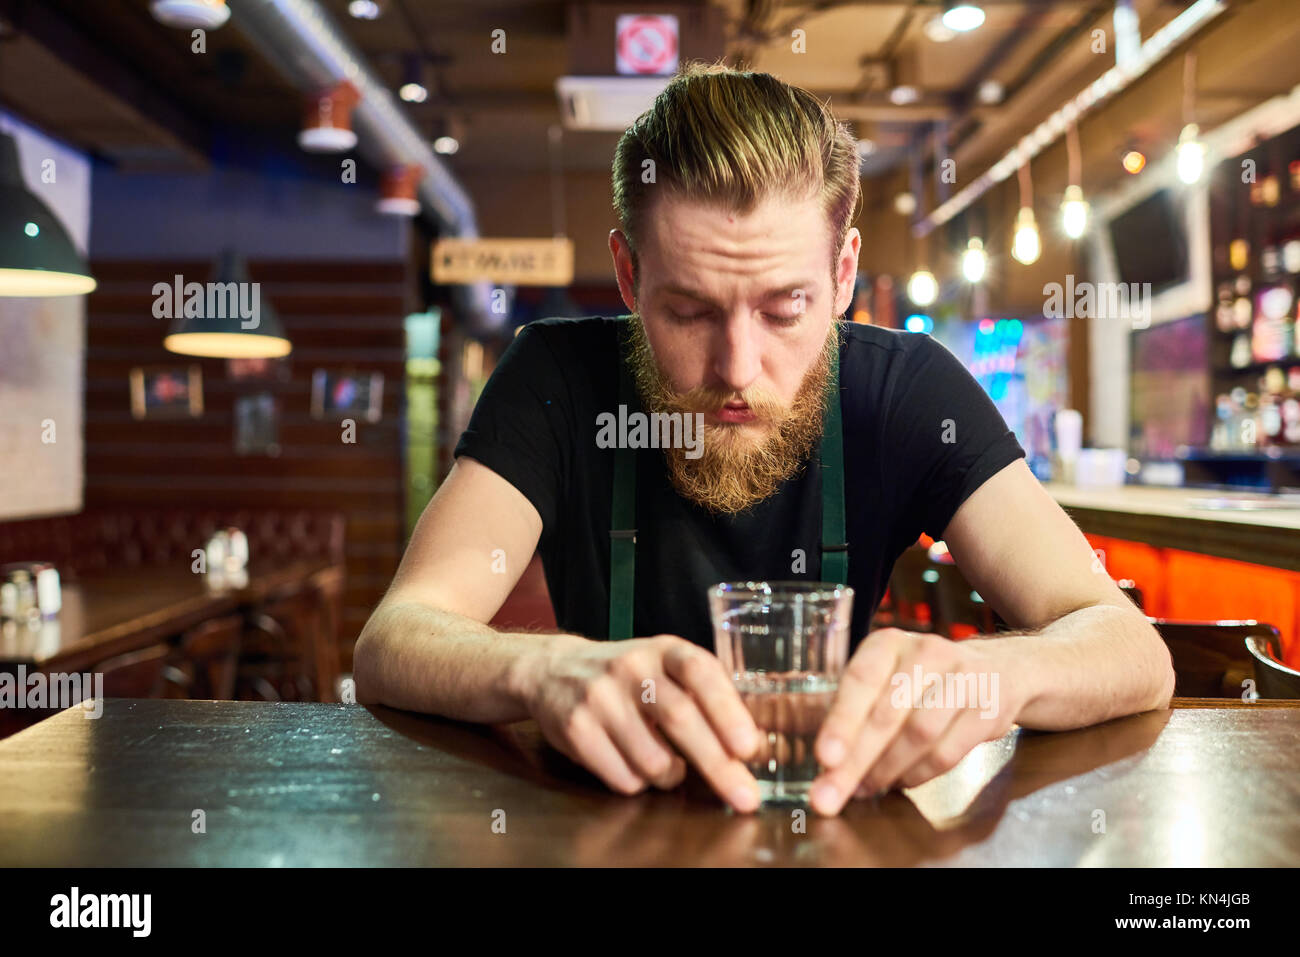 Young Bearded Man Getting Drunk in Bar - Stock Image